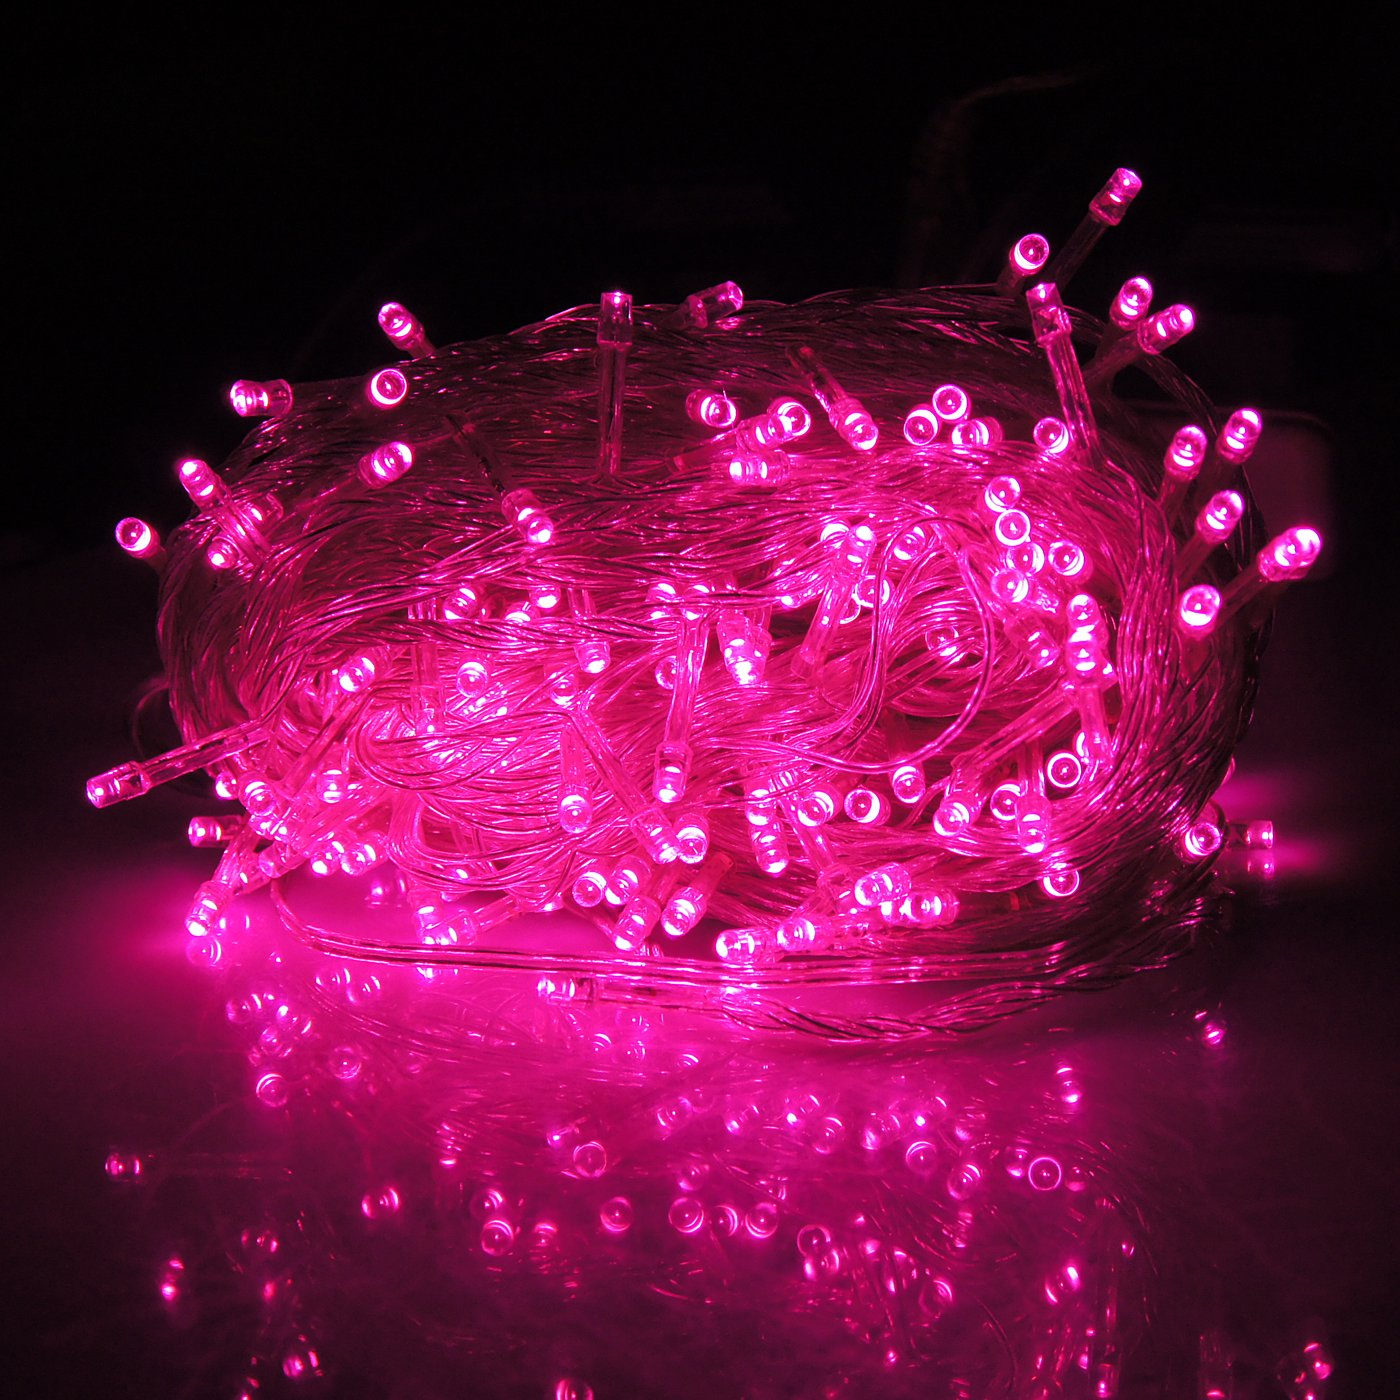 Amazon.com : HDE Linkable LED String Lights Holiday Home Fairy ...